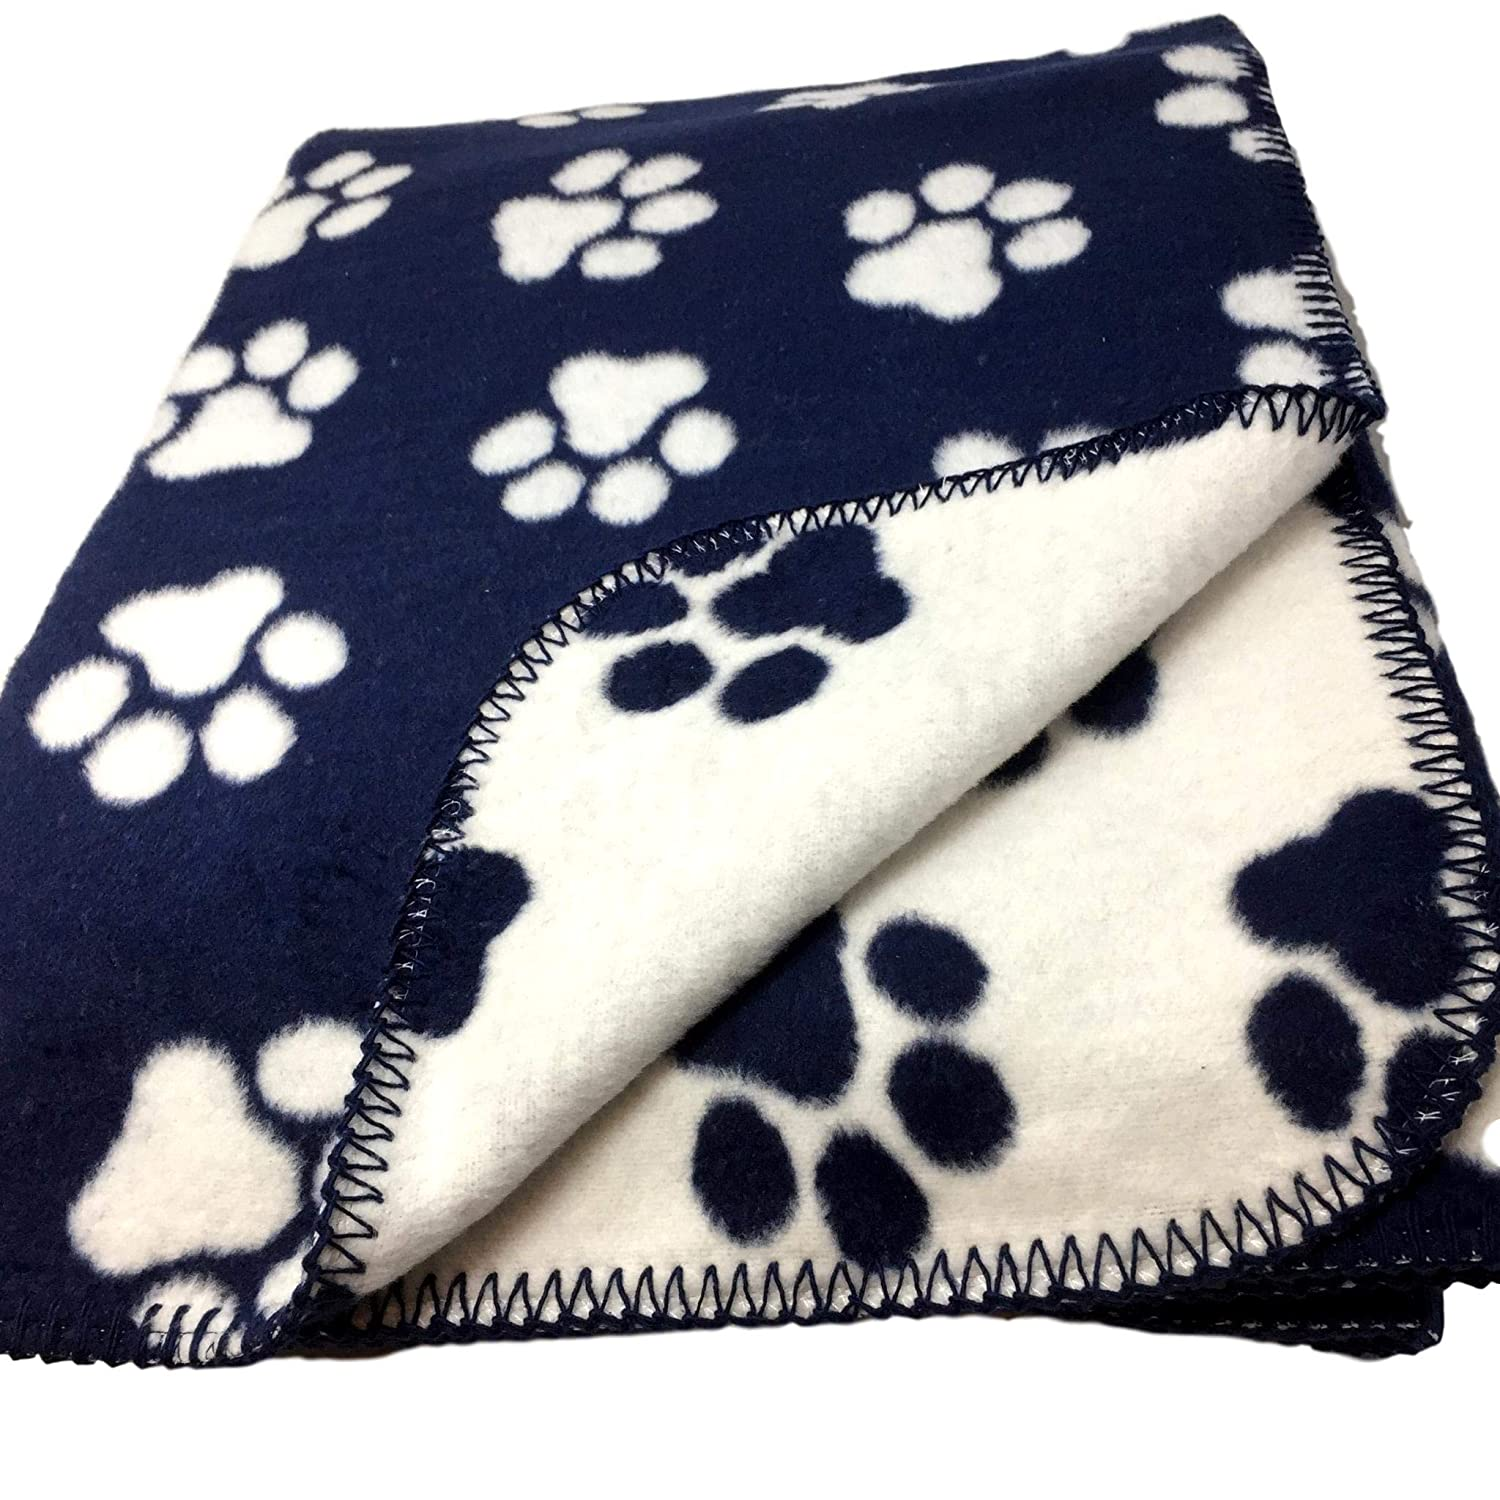 Navy Blue with White Paw Prints Reversible to White with Blue Paws Oversized Throw Blanket